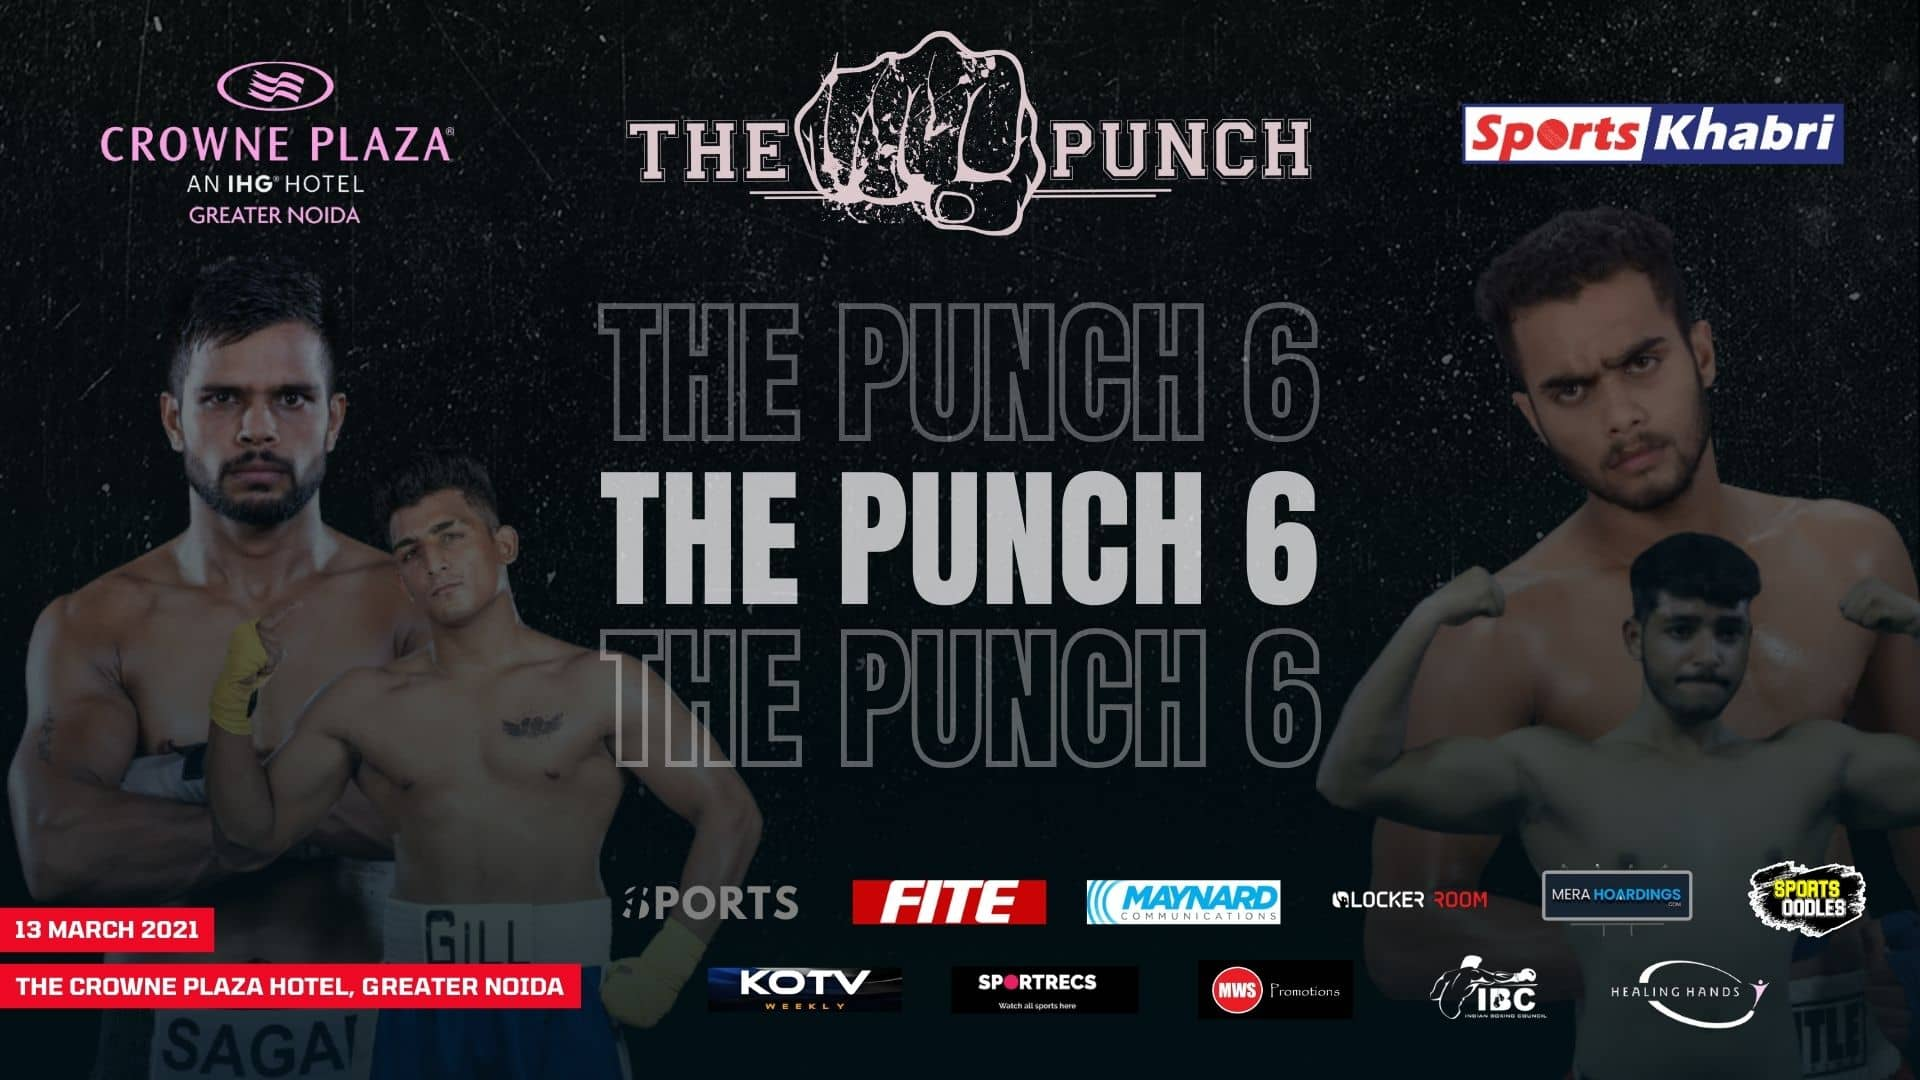 The-Punch-6-Fight-Card